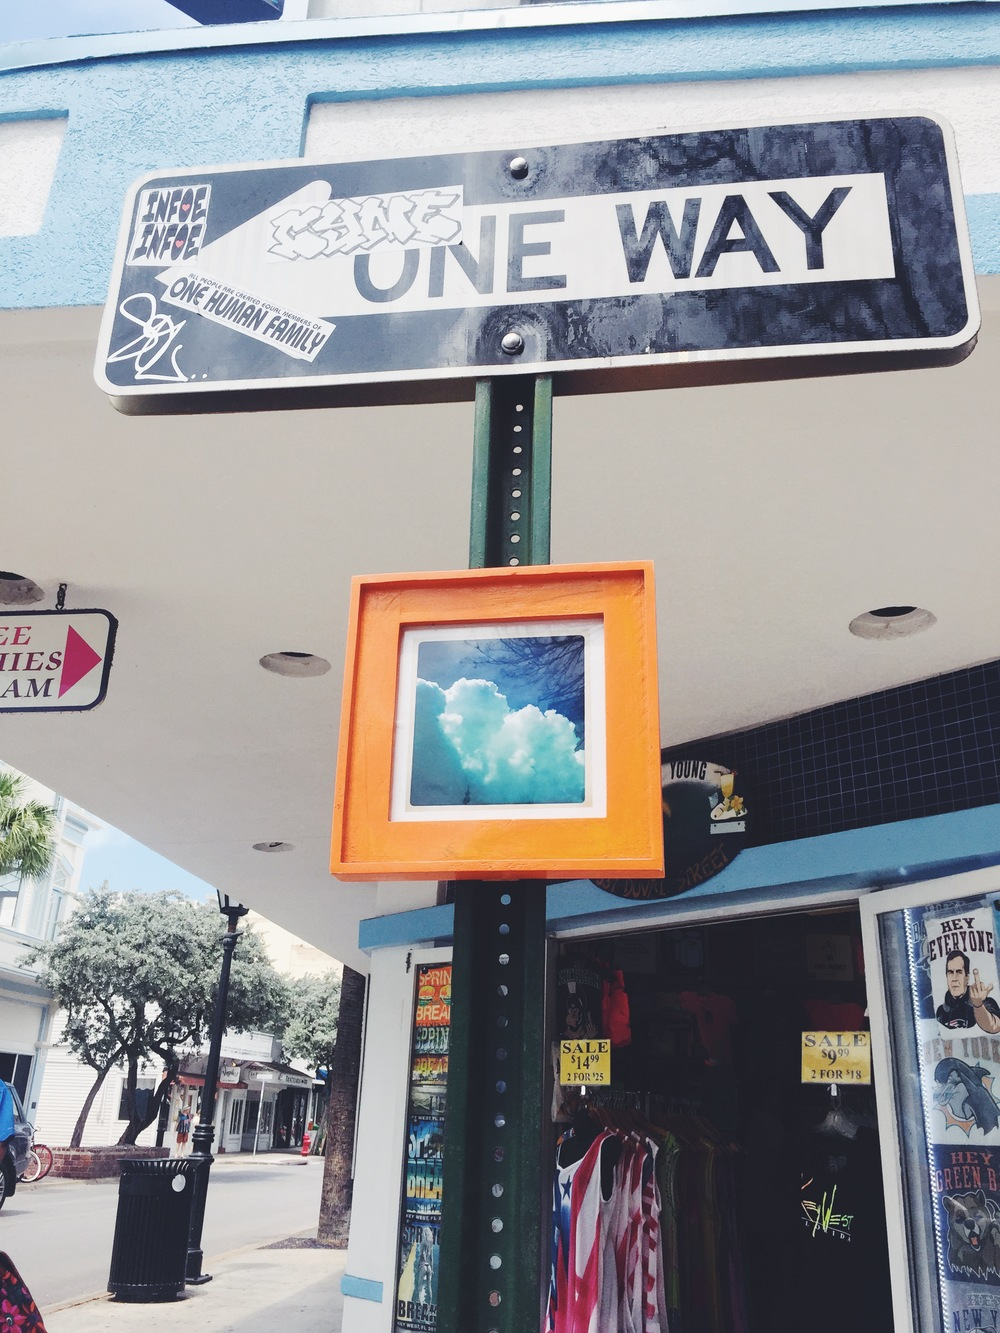 One Way: Key West in a shot